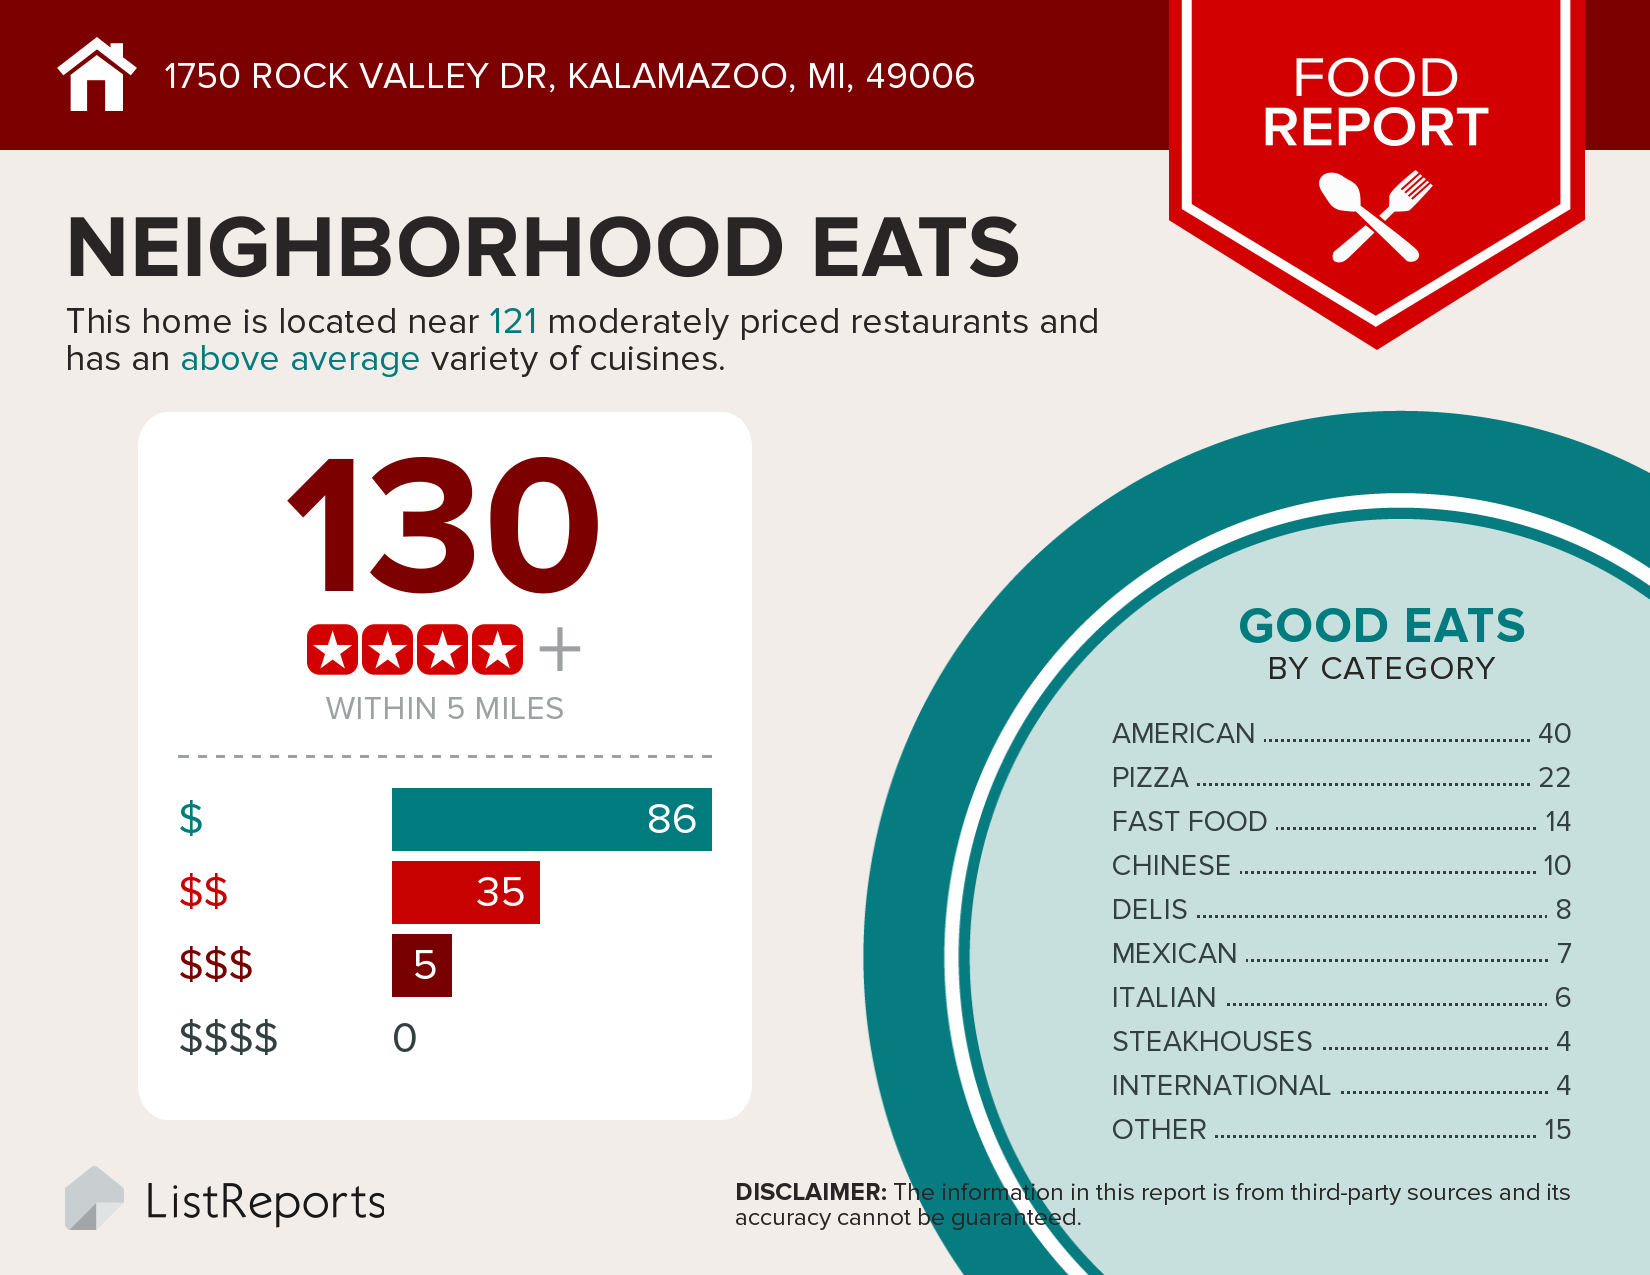 Image of a food report showing there are 130 restaurants within 5 miles of 1750 Rock Valley Drive Kalamazoo MI